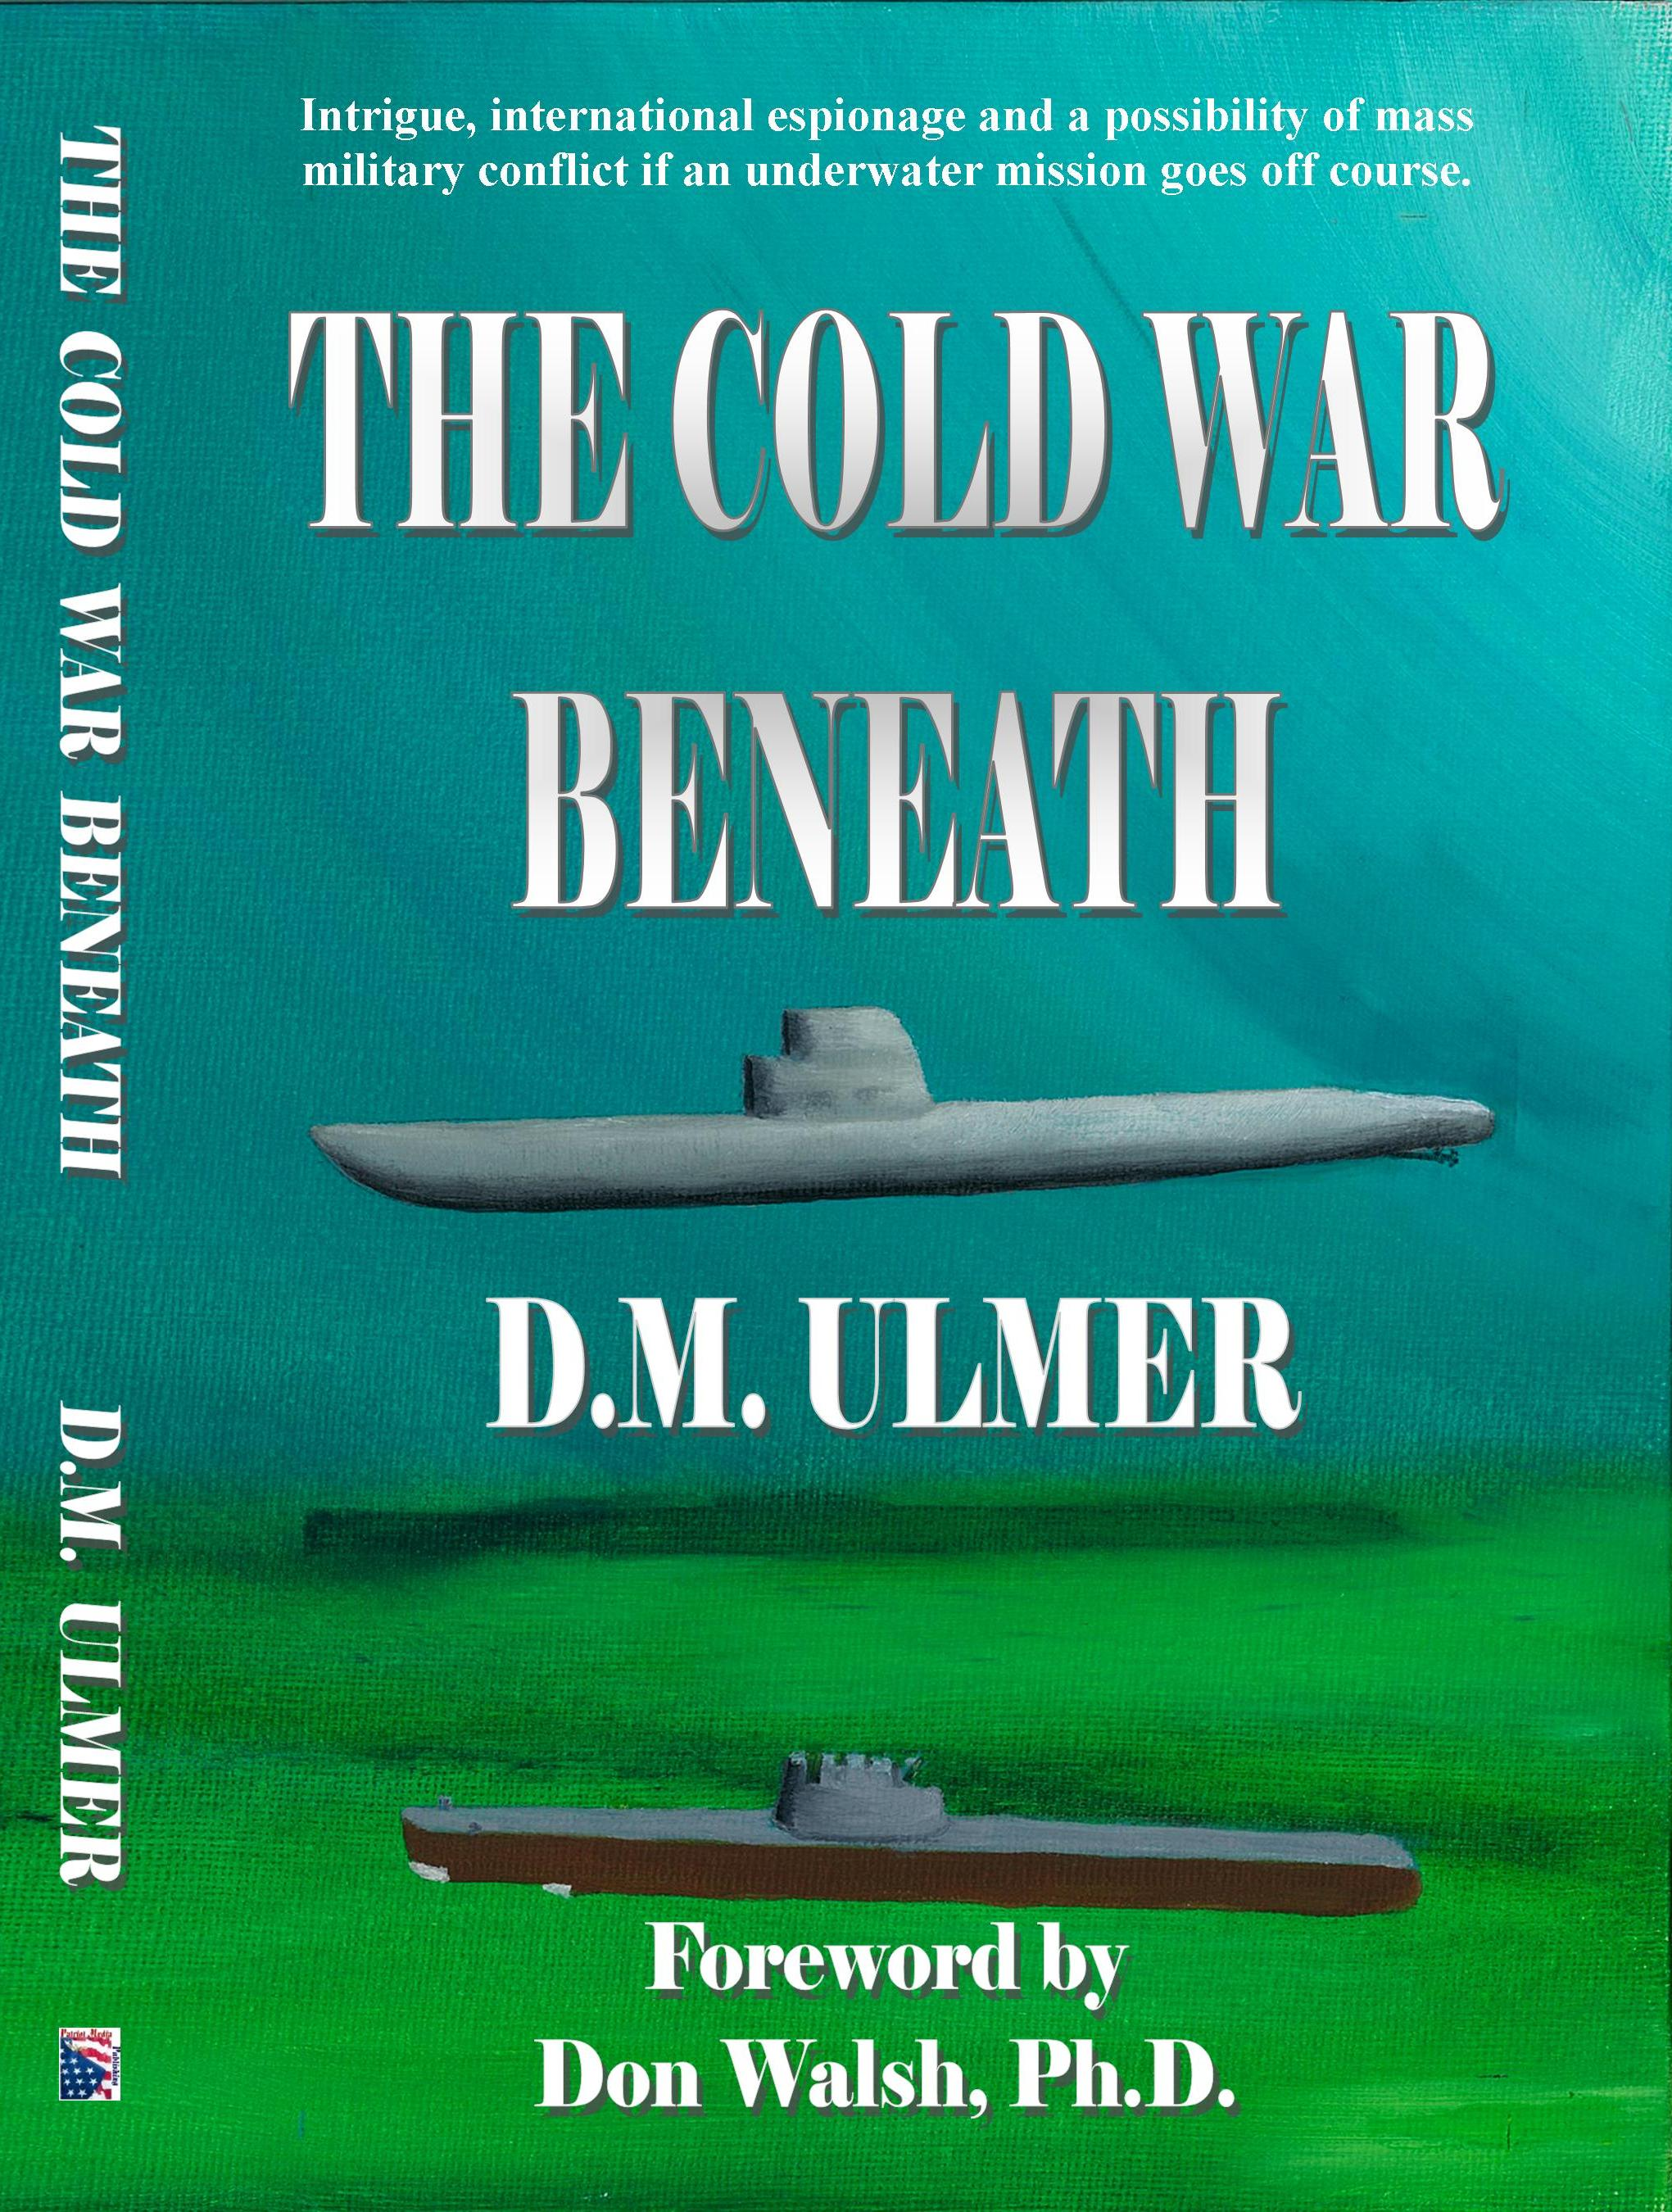 The Cold War Beneath by D.M. Ulmer